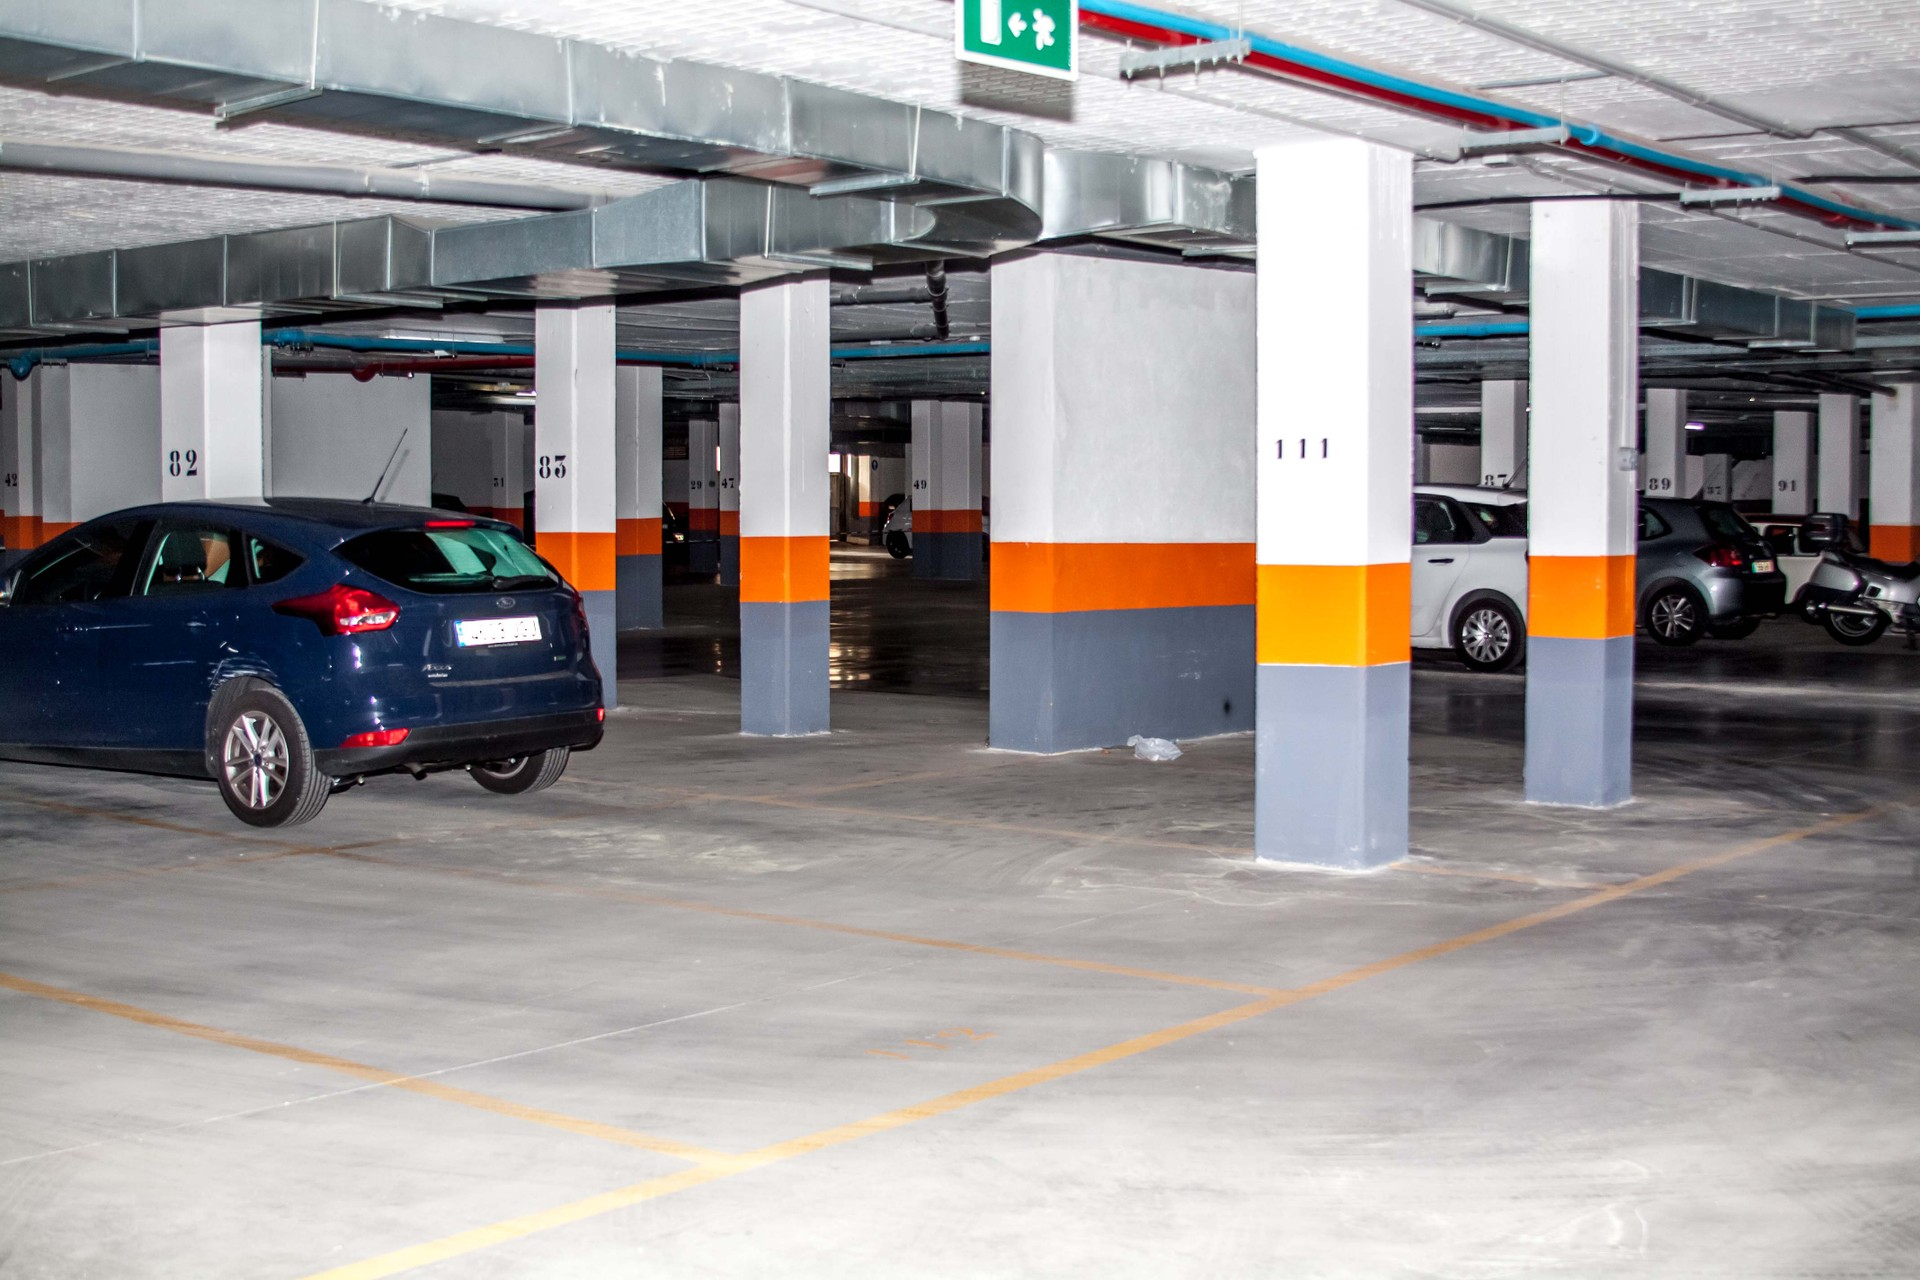 Oficina en Casco Histórico de Vallecas - Parking 1.jpg